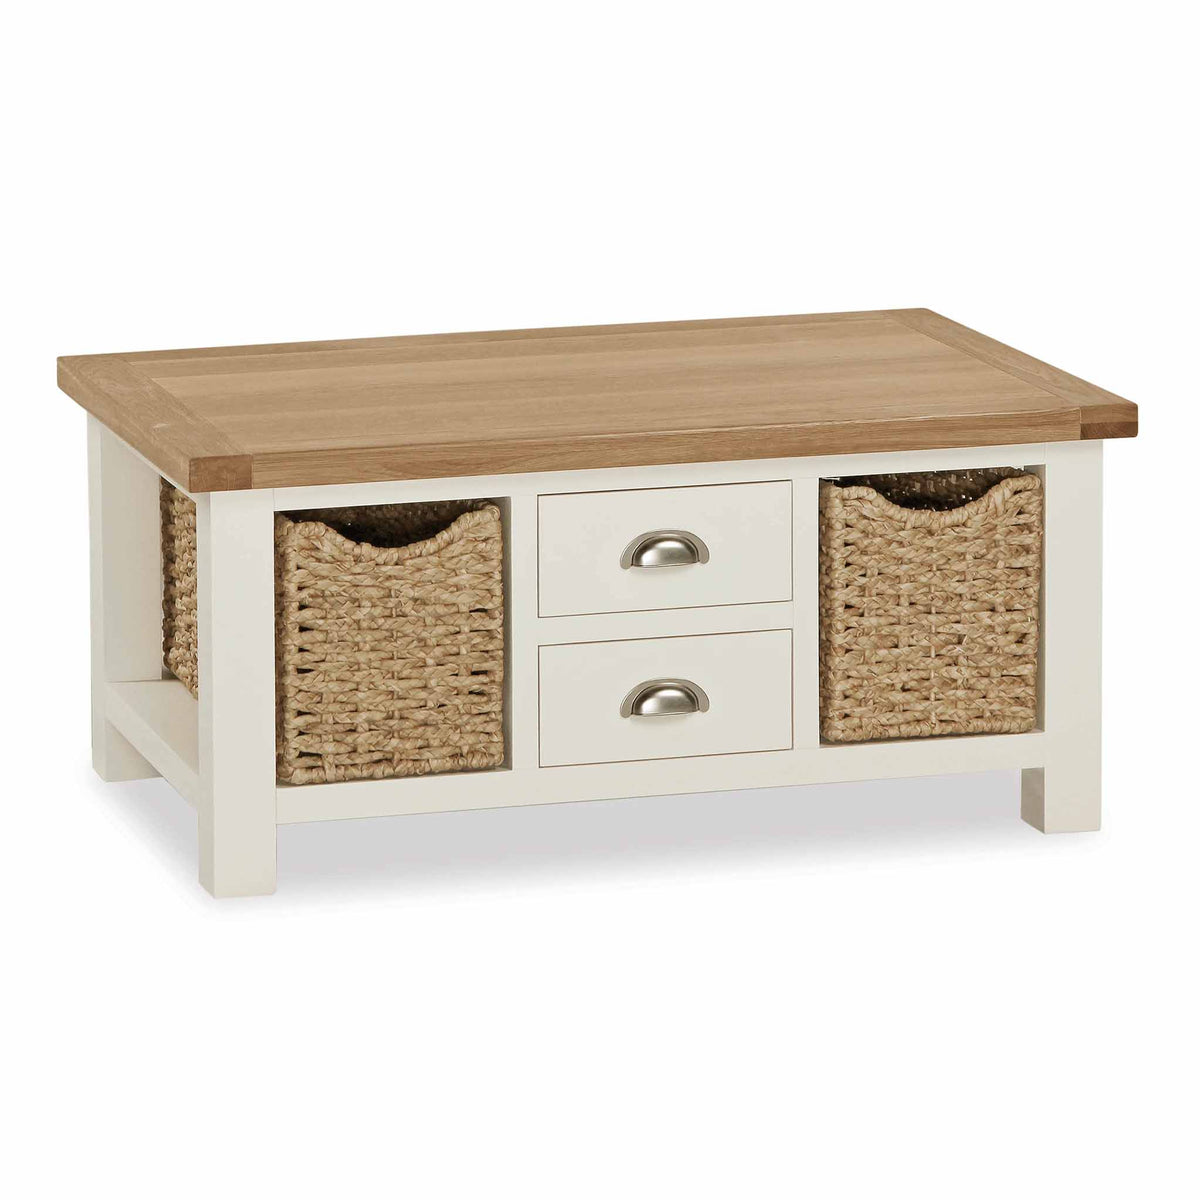 The Daymer Cream Large Coffee Table with Storage Baskets and 2 Drawers from Roseland Furniture